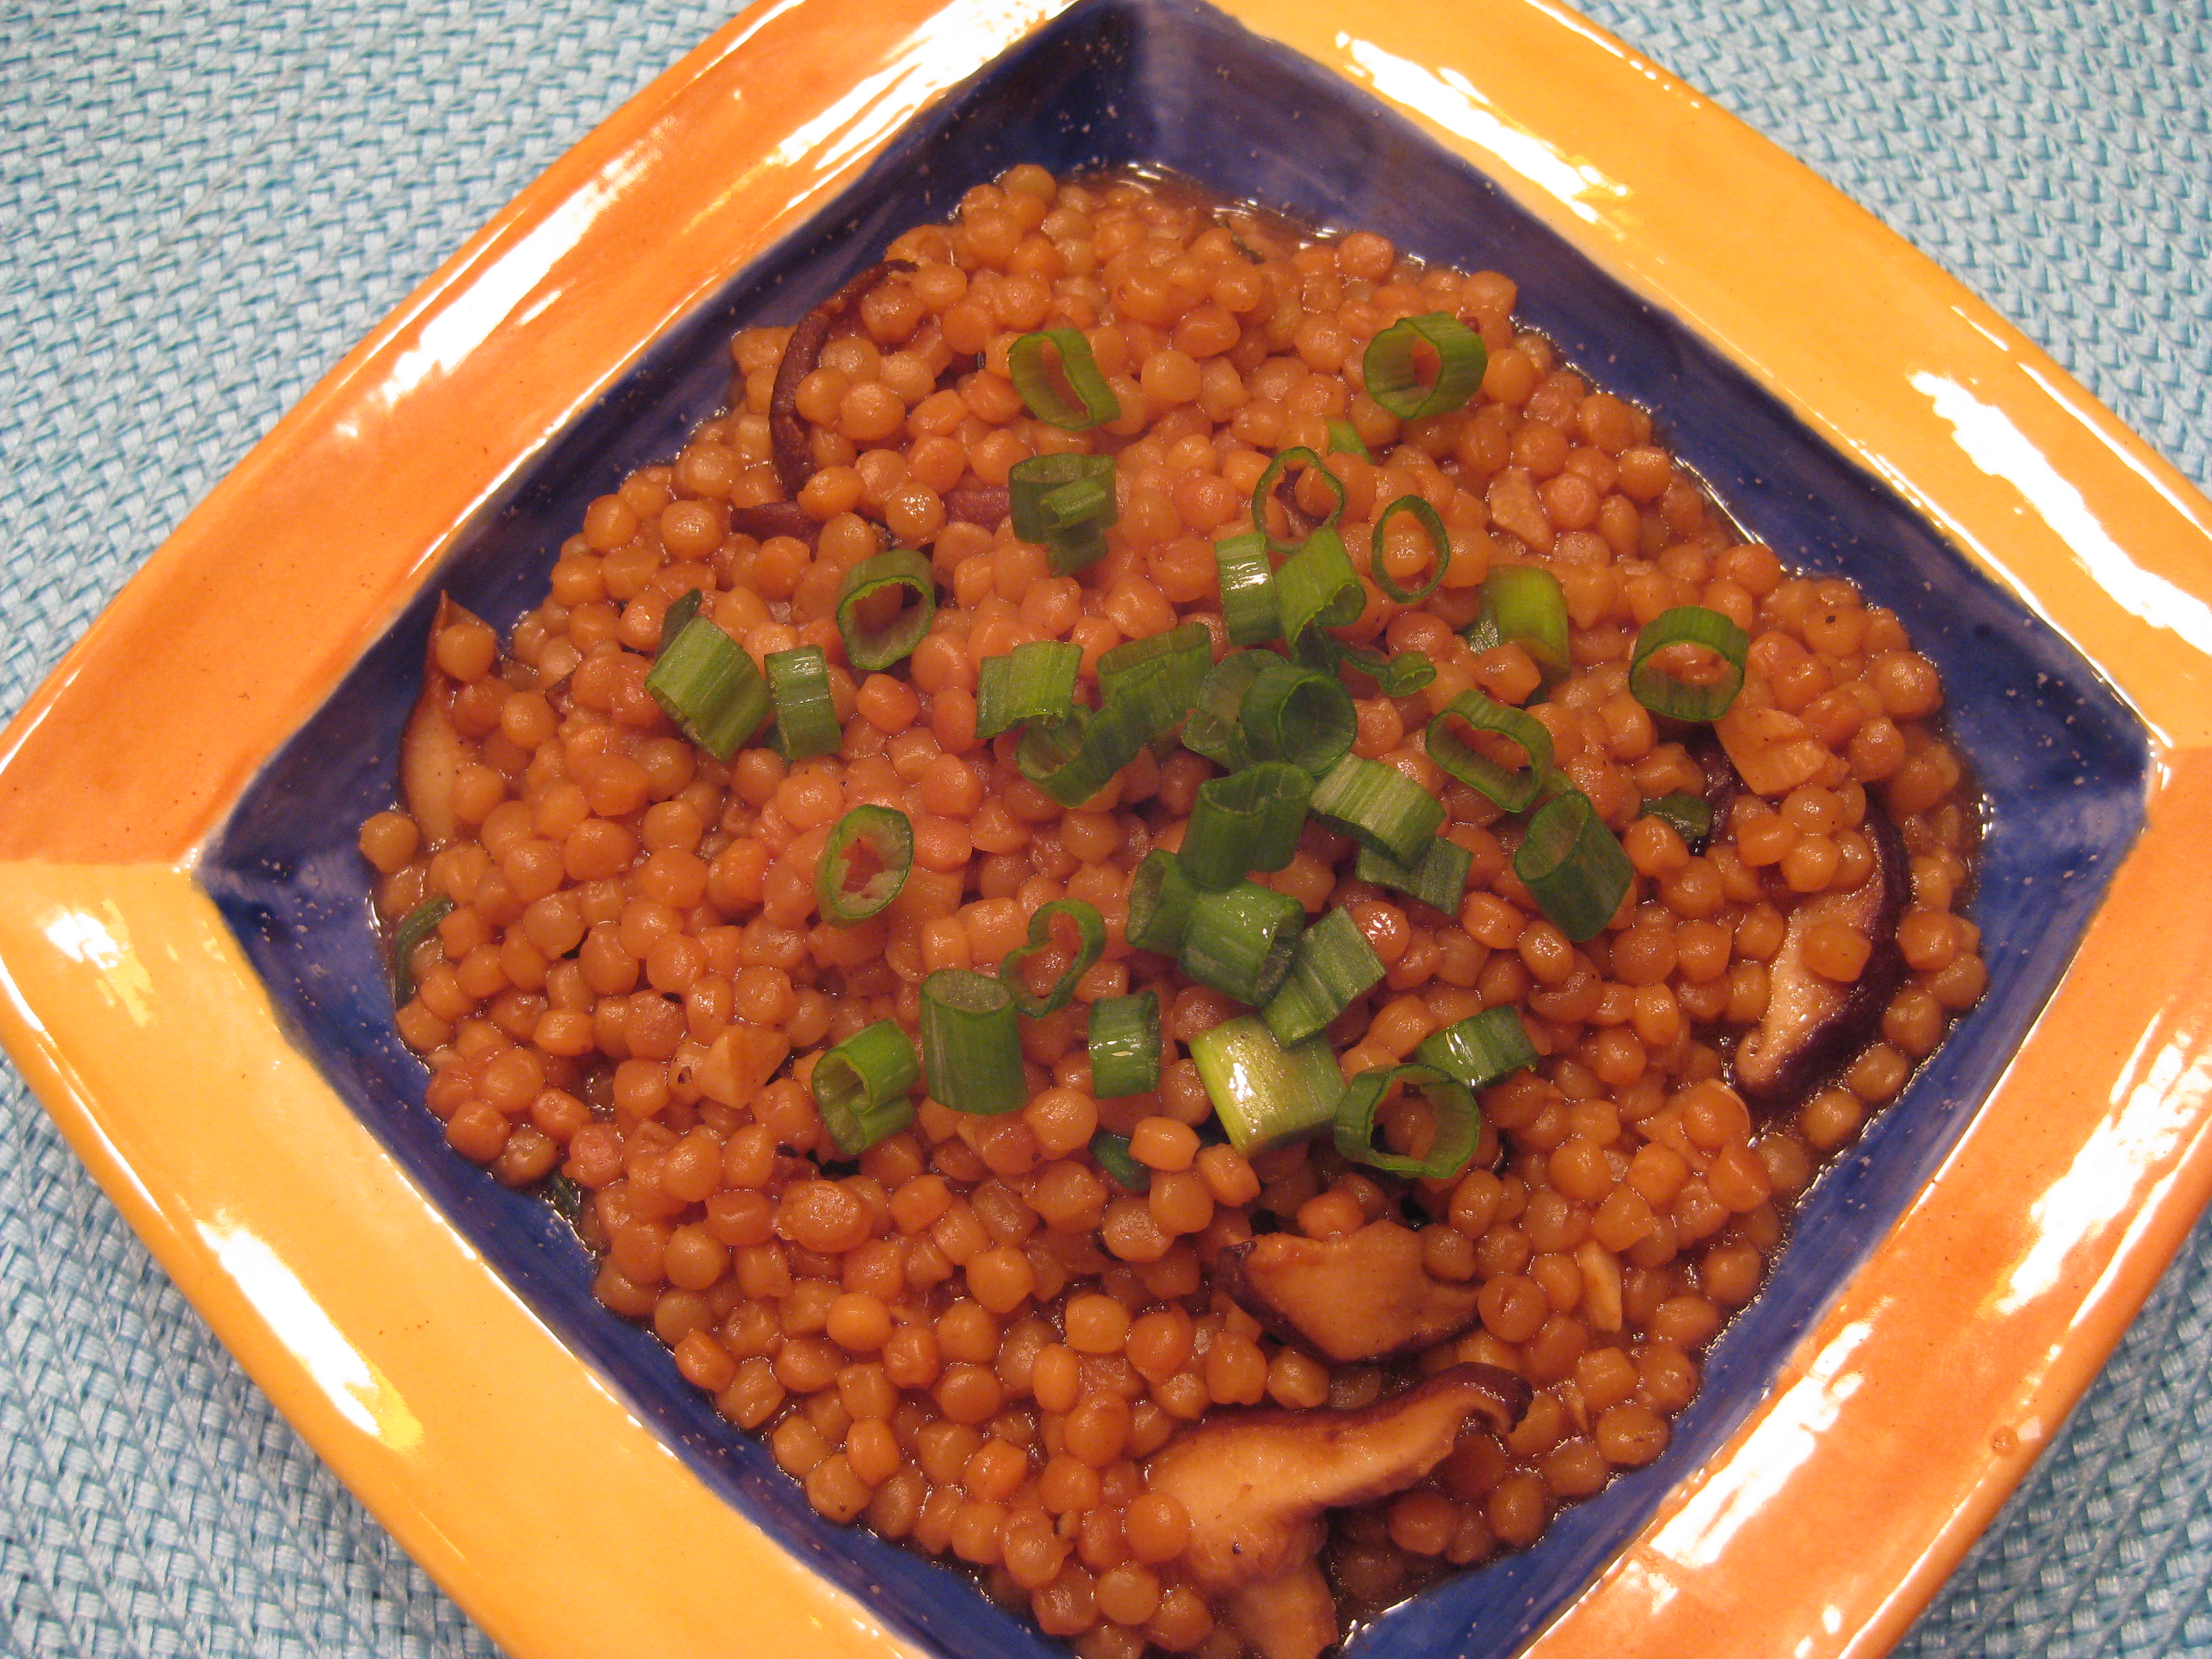 Israeli Couscous with Miso and Shiitakes